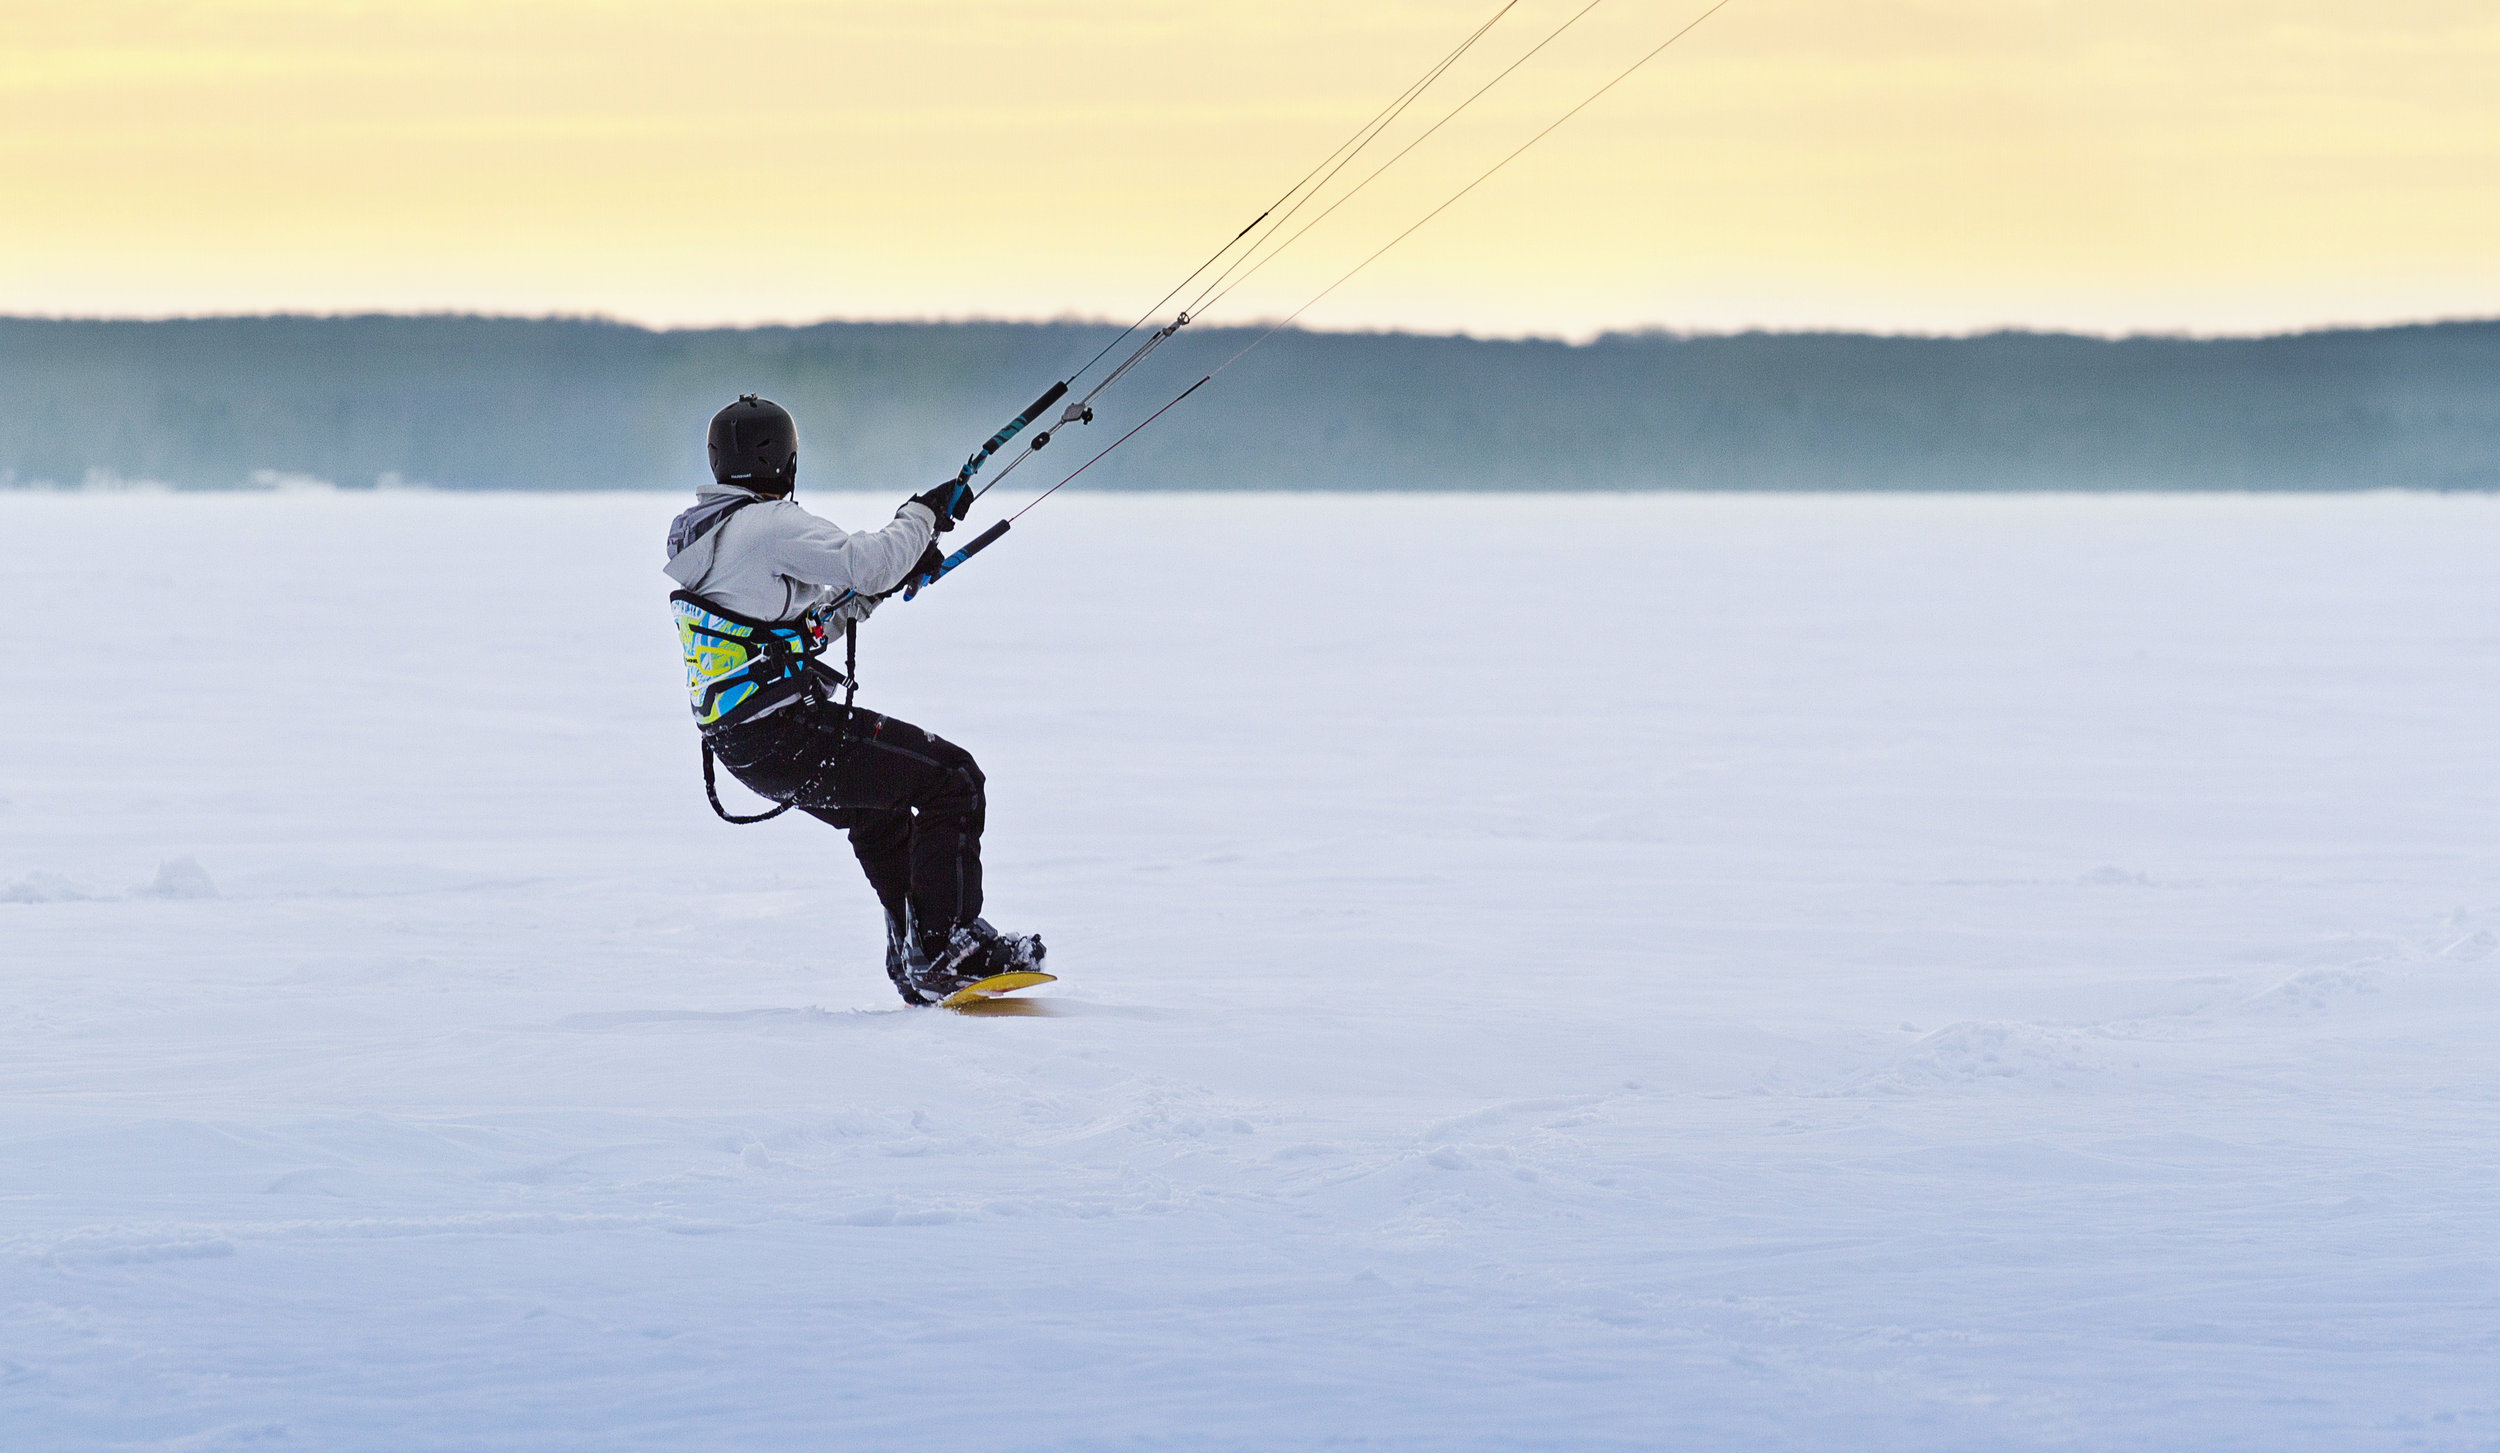 Snowkiting on Indian Lake in the Upper Peninsula of Michigan